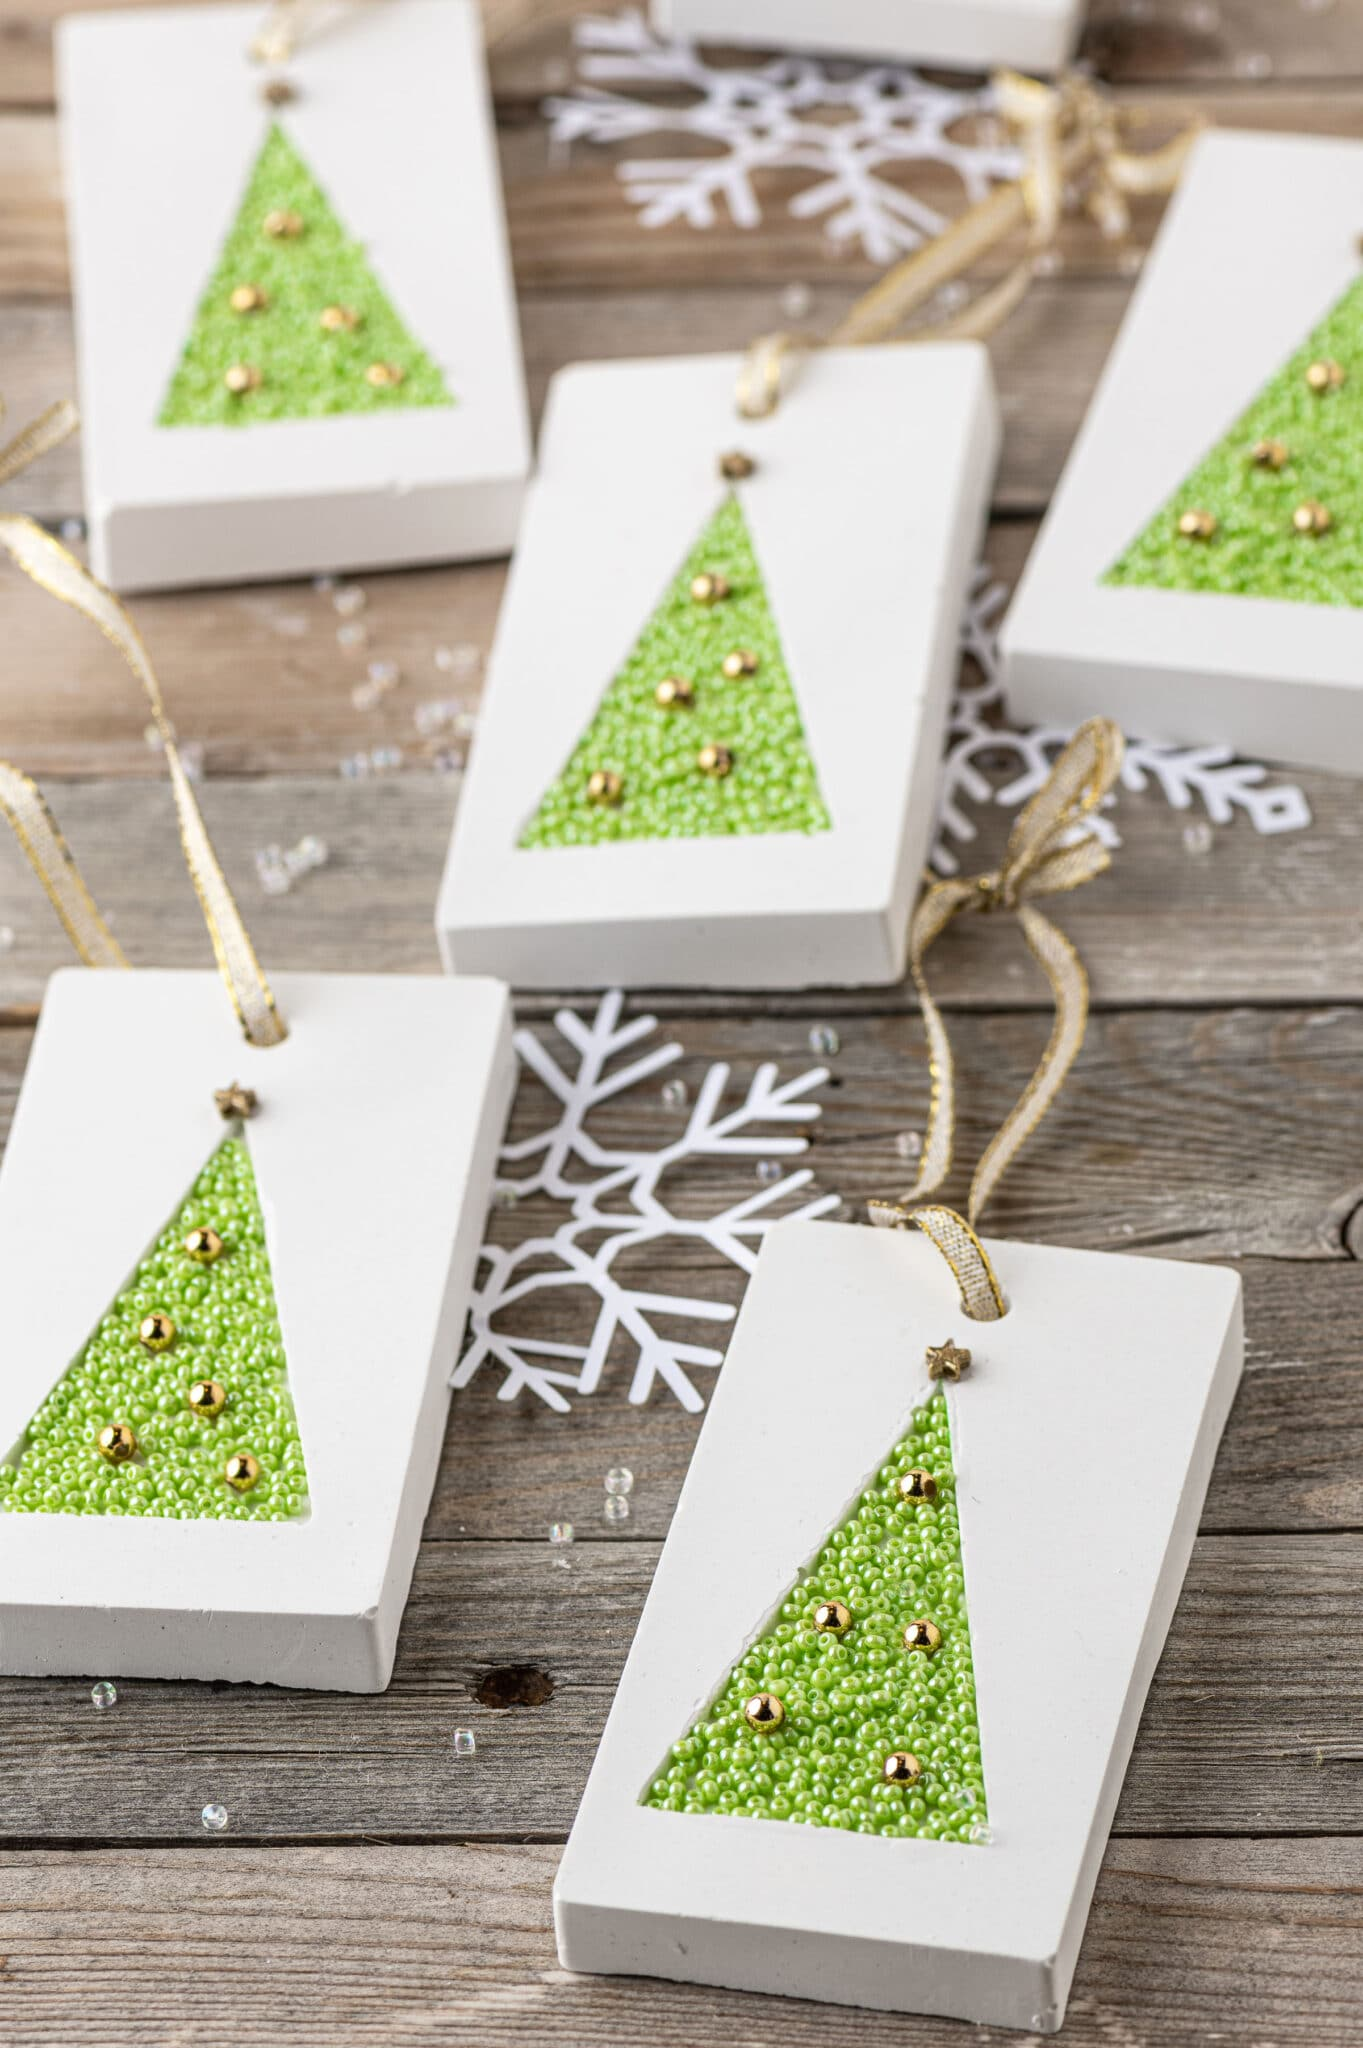 Plaster rectangle hanging tags with green beaded tree inlay